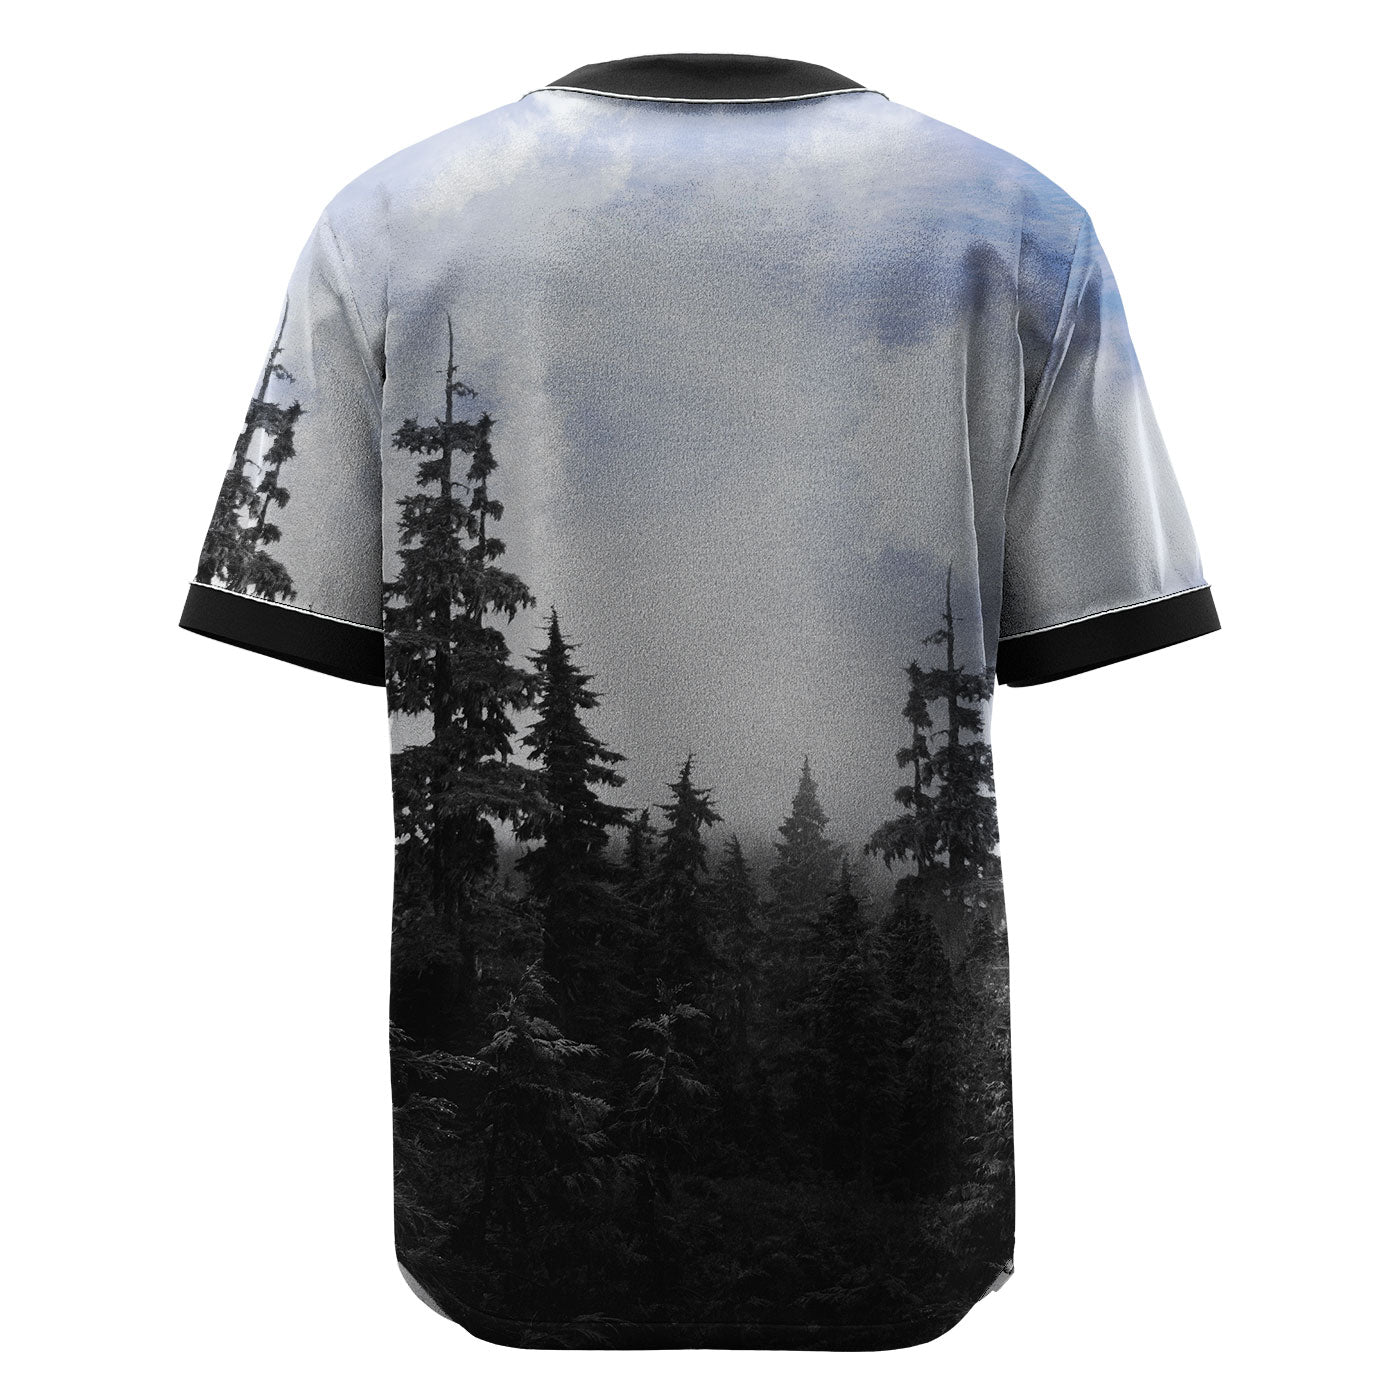 Chilly Morning Unisex Jersey